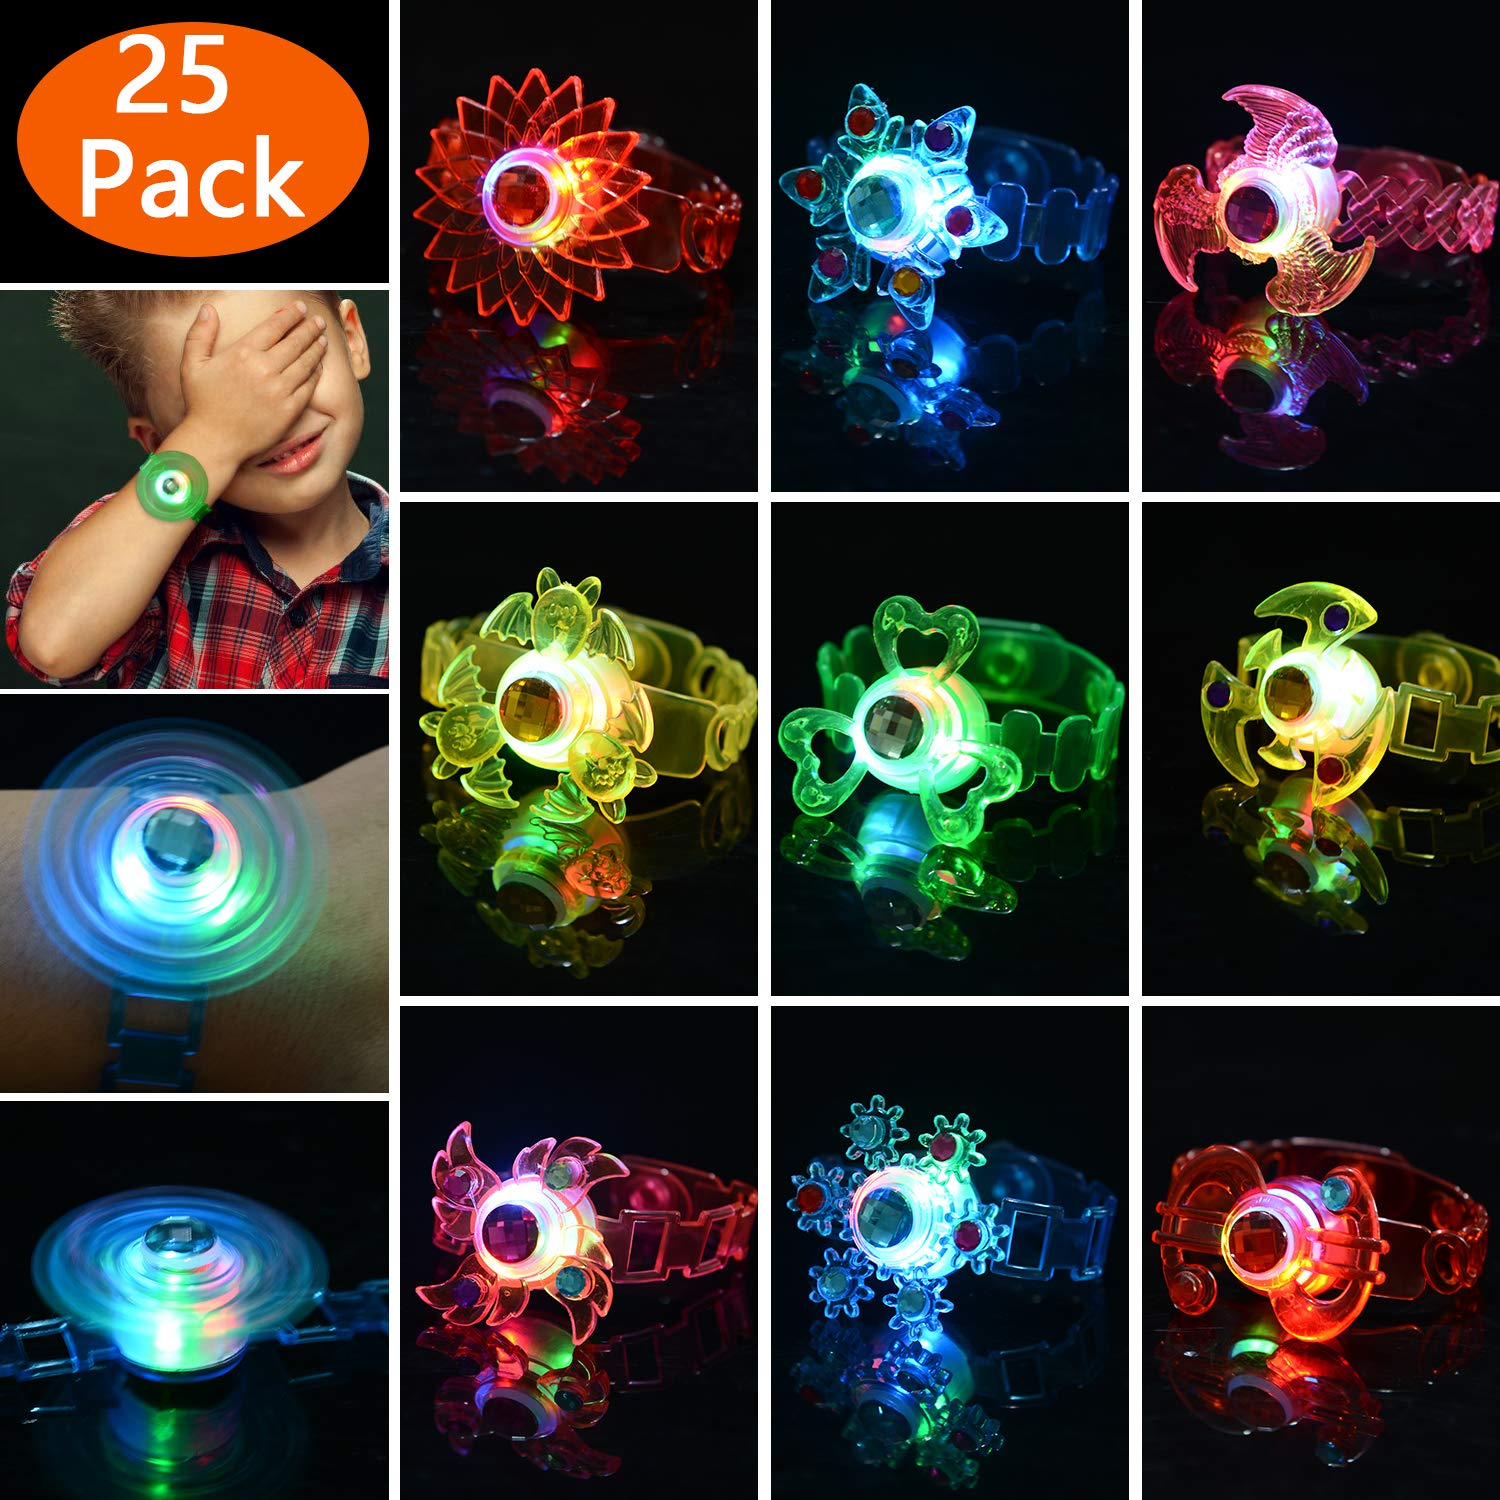 Mikulala Glow in The Dark Birthday Party Favors for Kids Prizes Box Toys for Classroom 25 Pack Light Up Toys Hand Spin Stress Relief Anxiety Toys Bulk Fidget Toys Boys Girls LED Neon Party Supplies by Mikulala